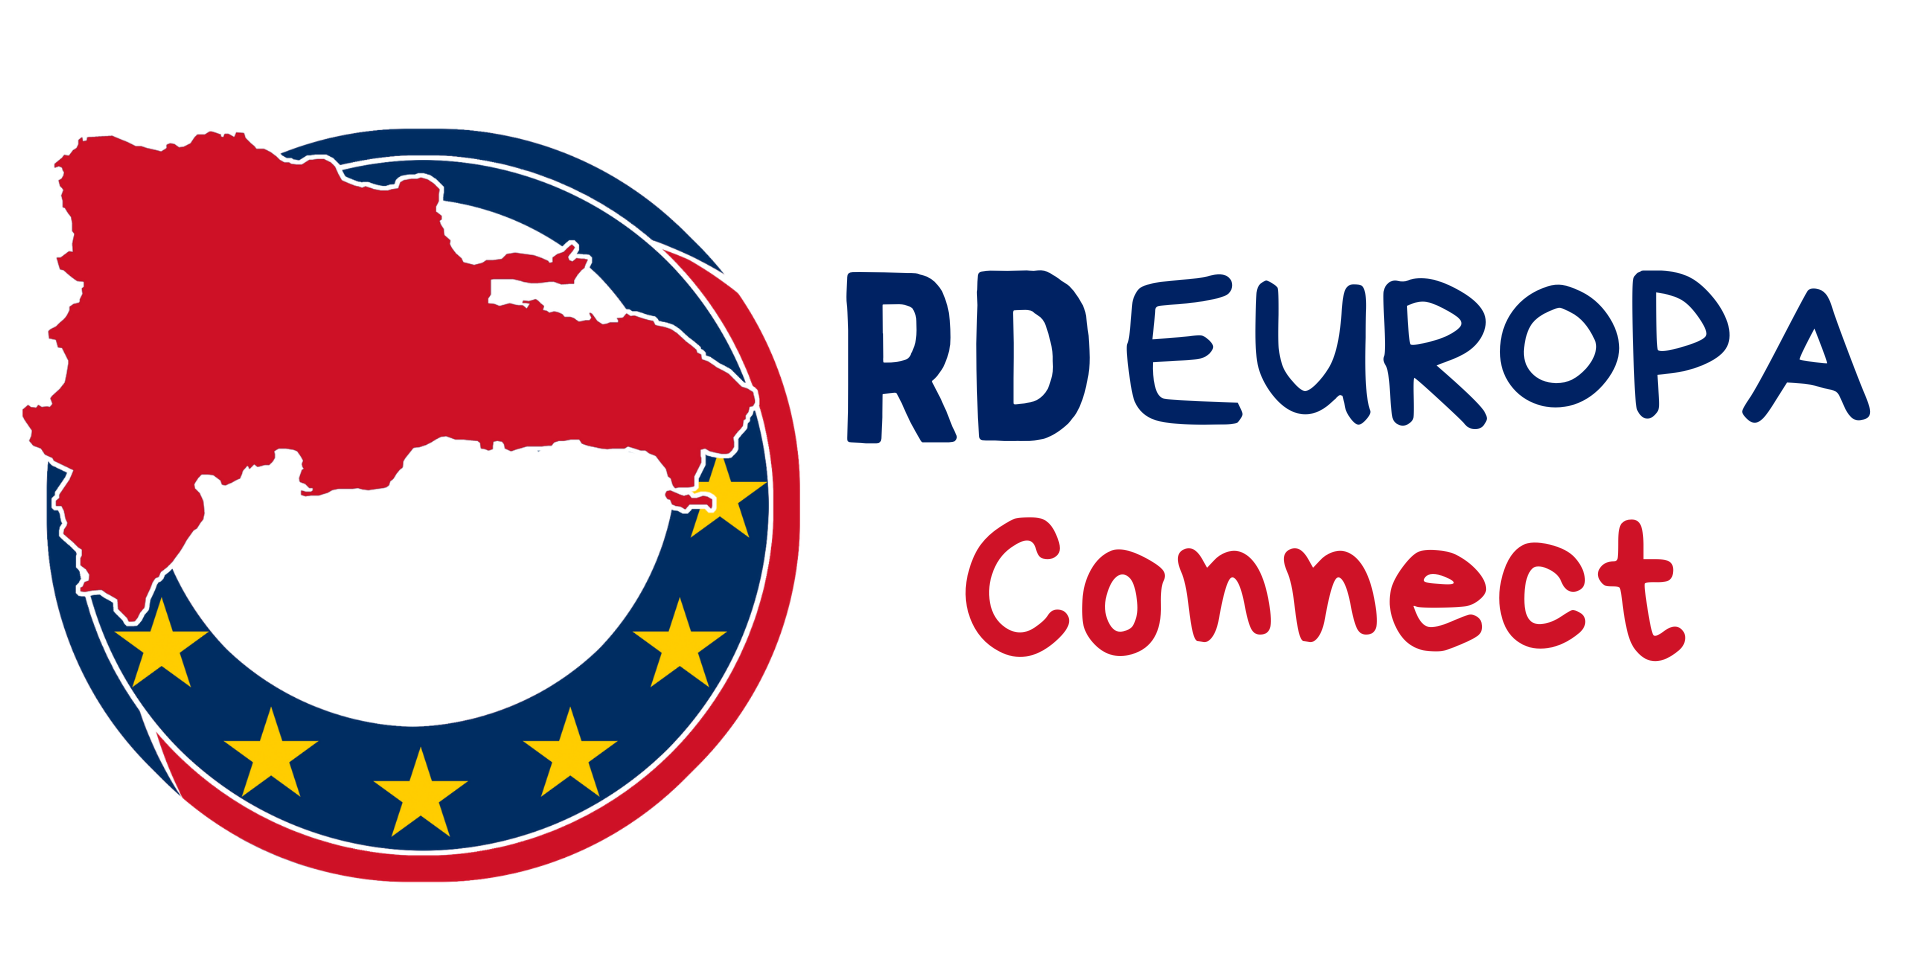 RD EUROPA CONNECT